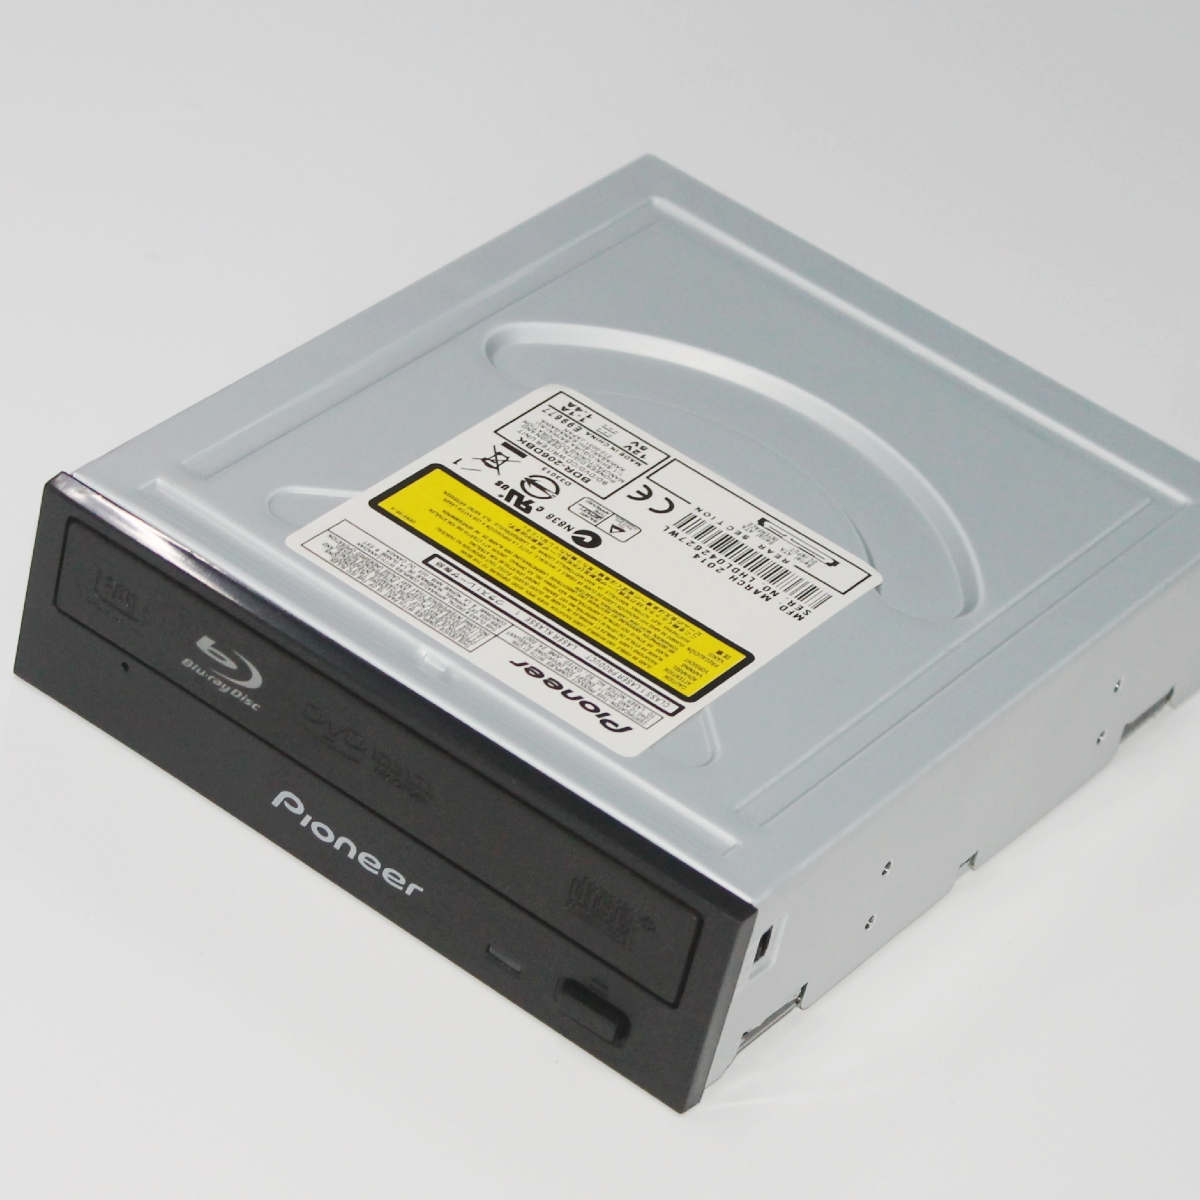 Pioneer BDR-S06 BD/DVD/CD Drive Drivers for PC